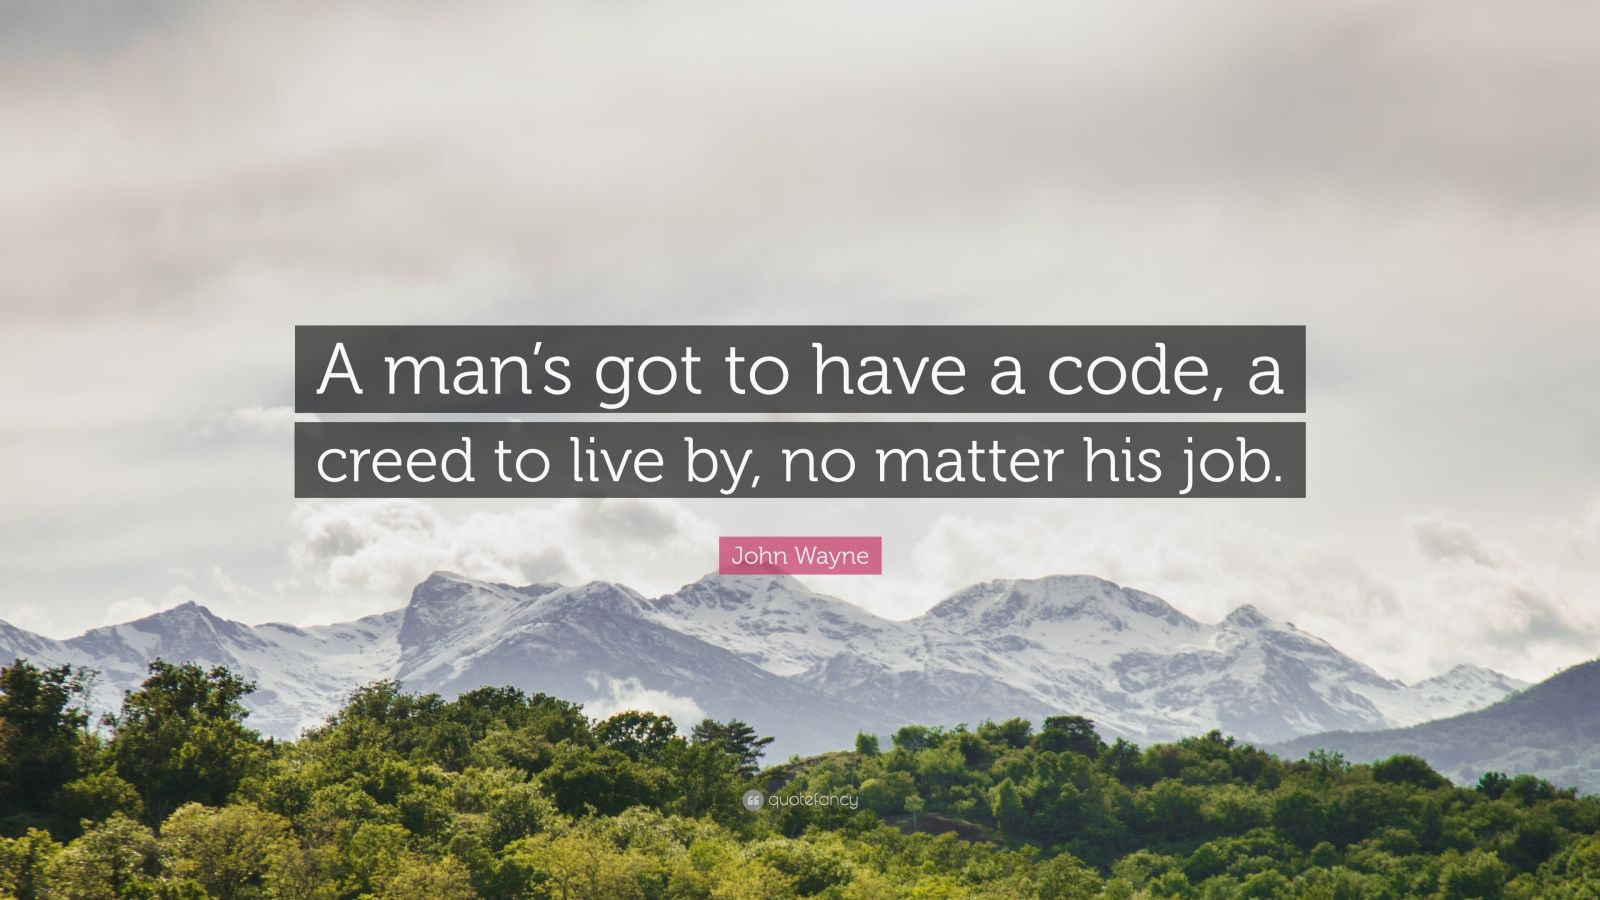 """John Wayne Quote: """"A man's got to have a code, a creed to live by, no matter his job."""""""